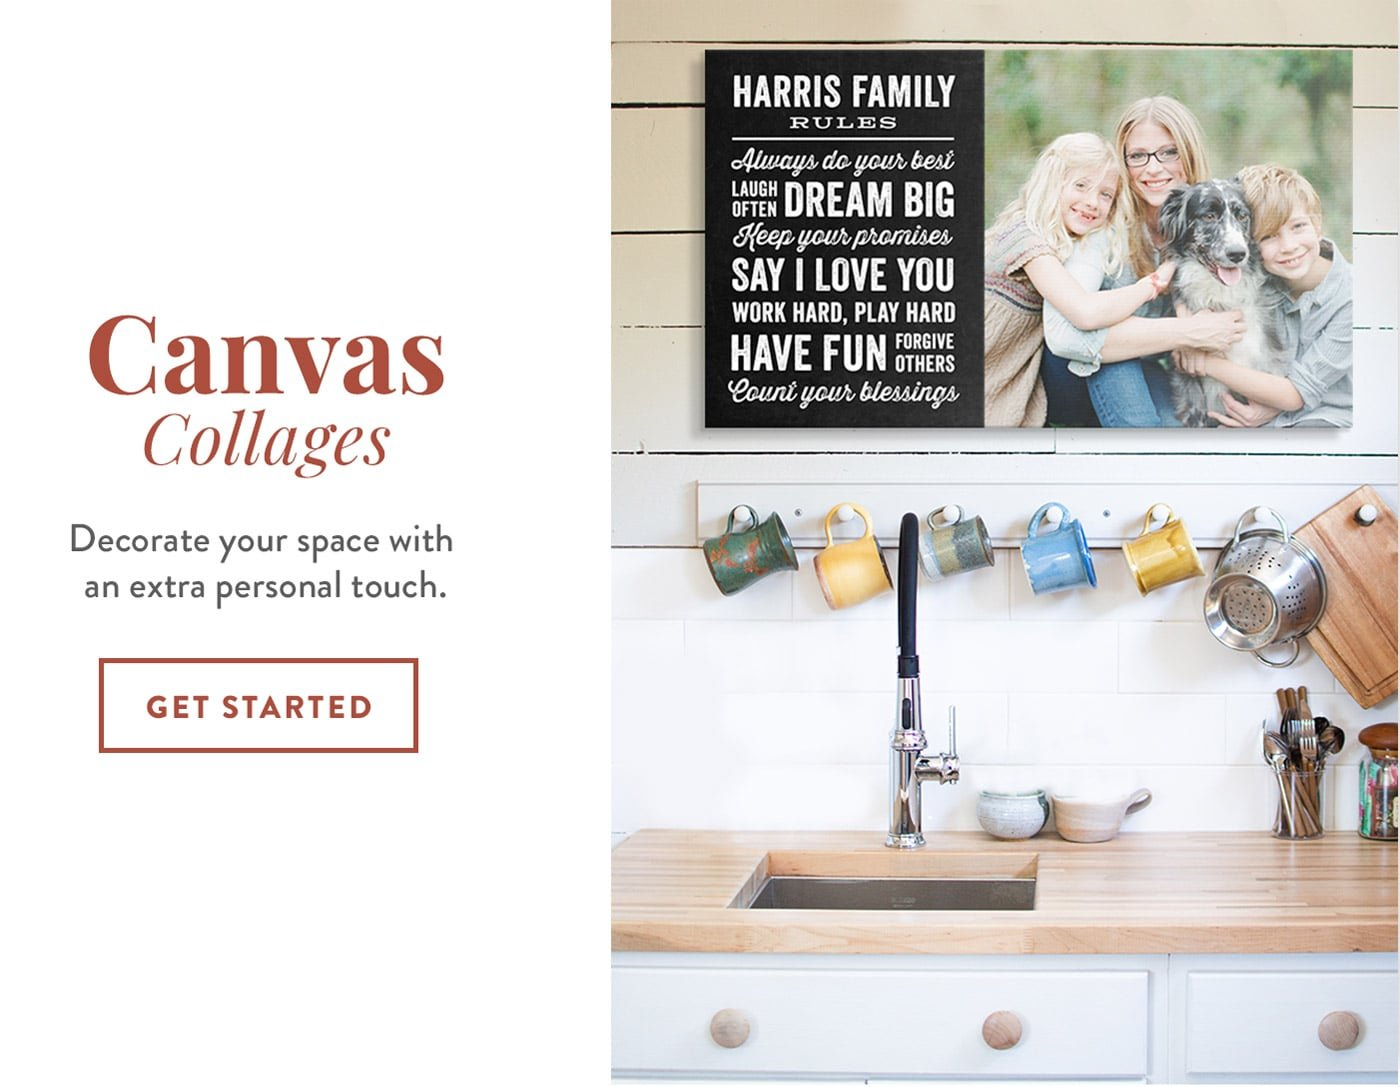 Canvas Collages   Decorate your space with an extra personal touch.   GET STARTED